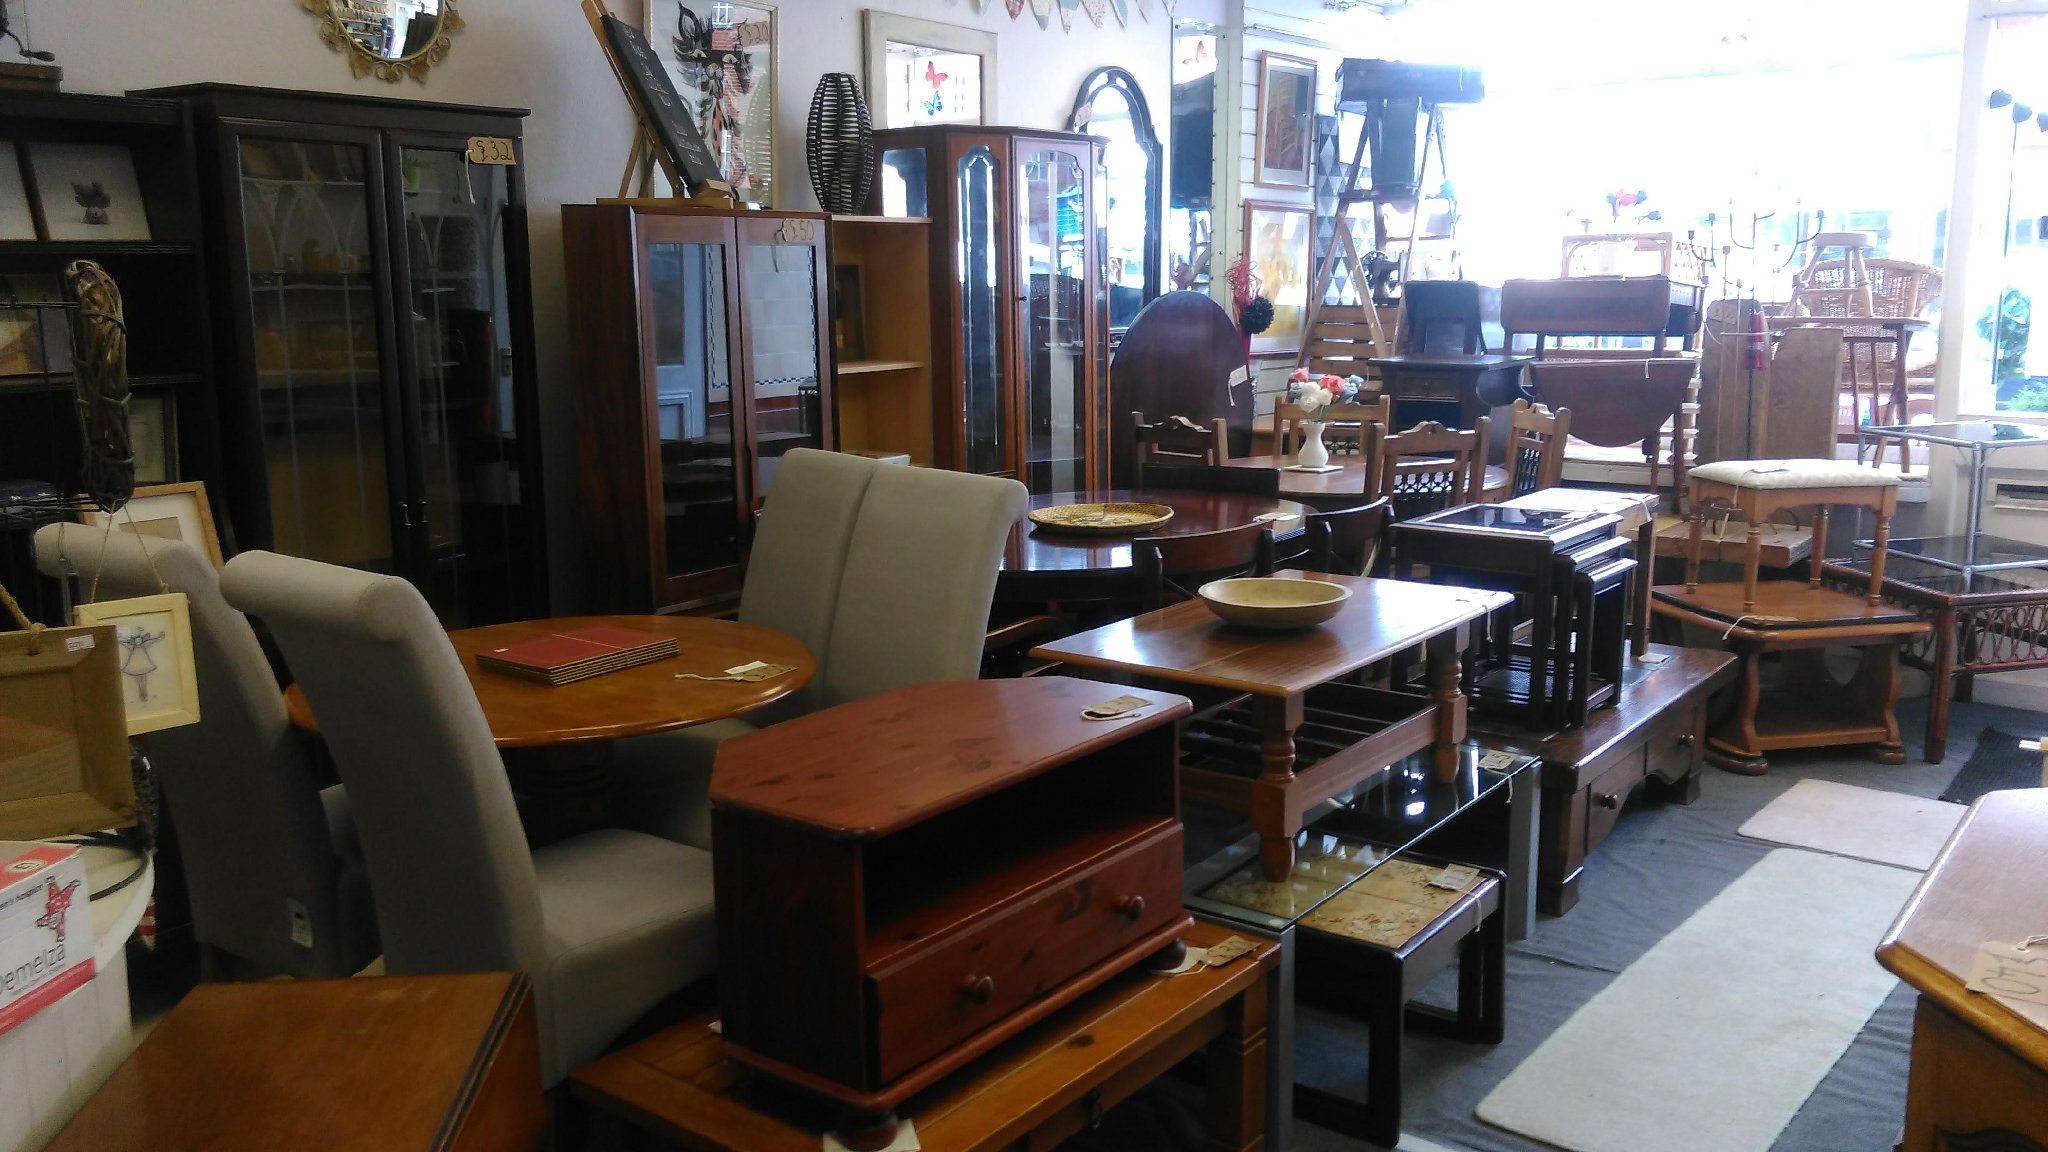 d j b furniture emporium furniture for home and office